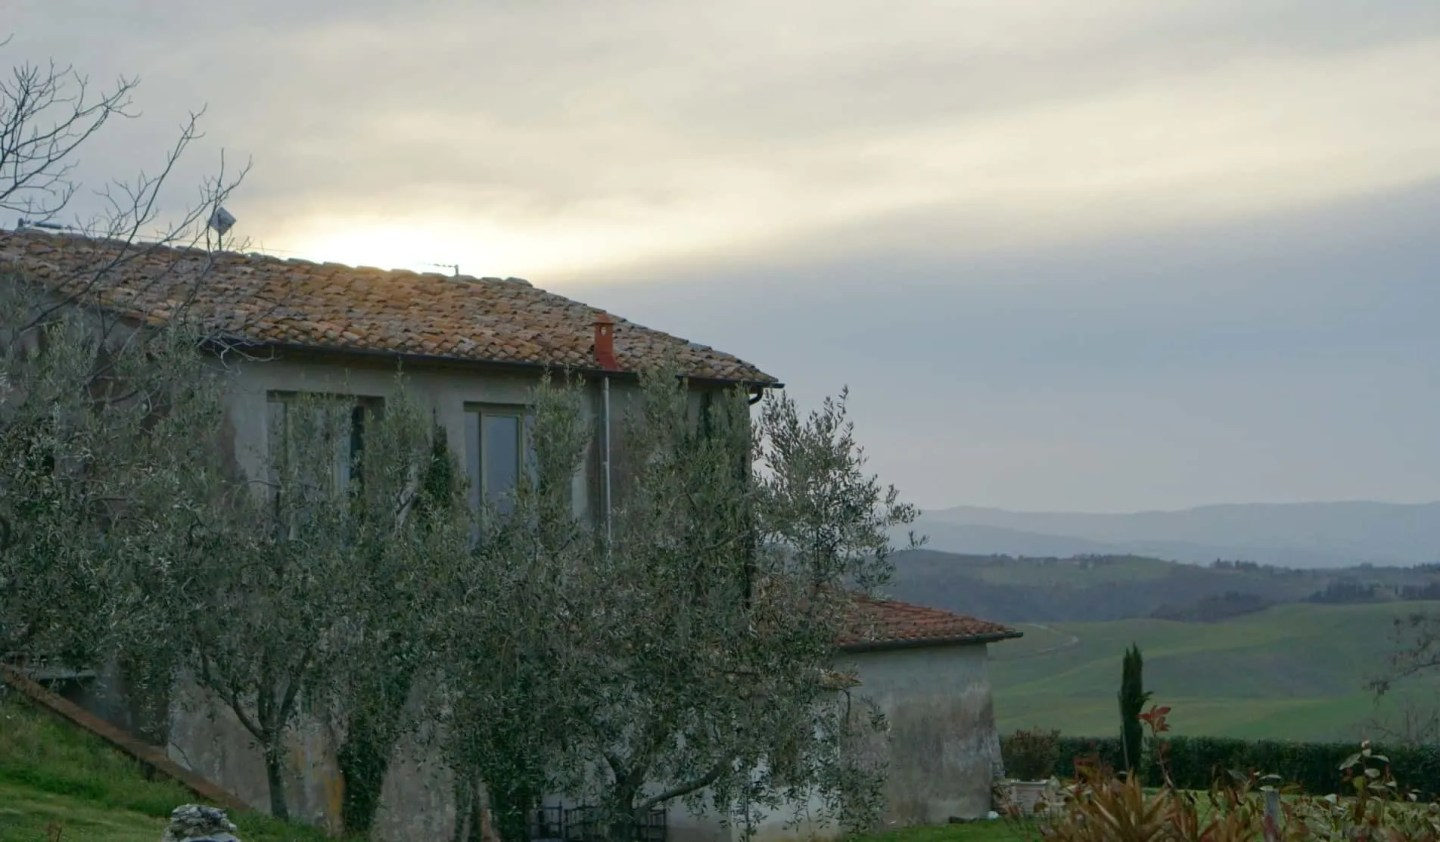 Country Relais & Spa Le Capanne is a 100+ year old farmhouse www.extraordinarychaos.com